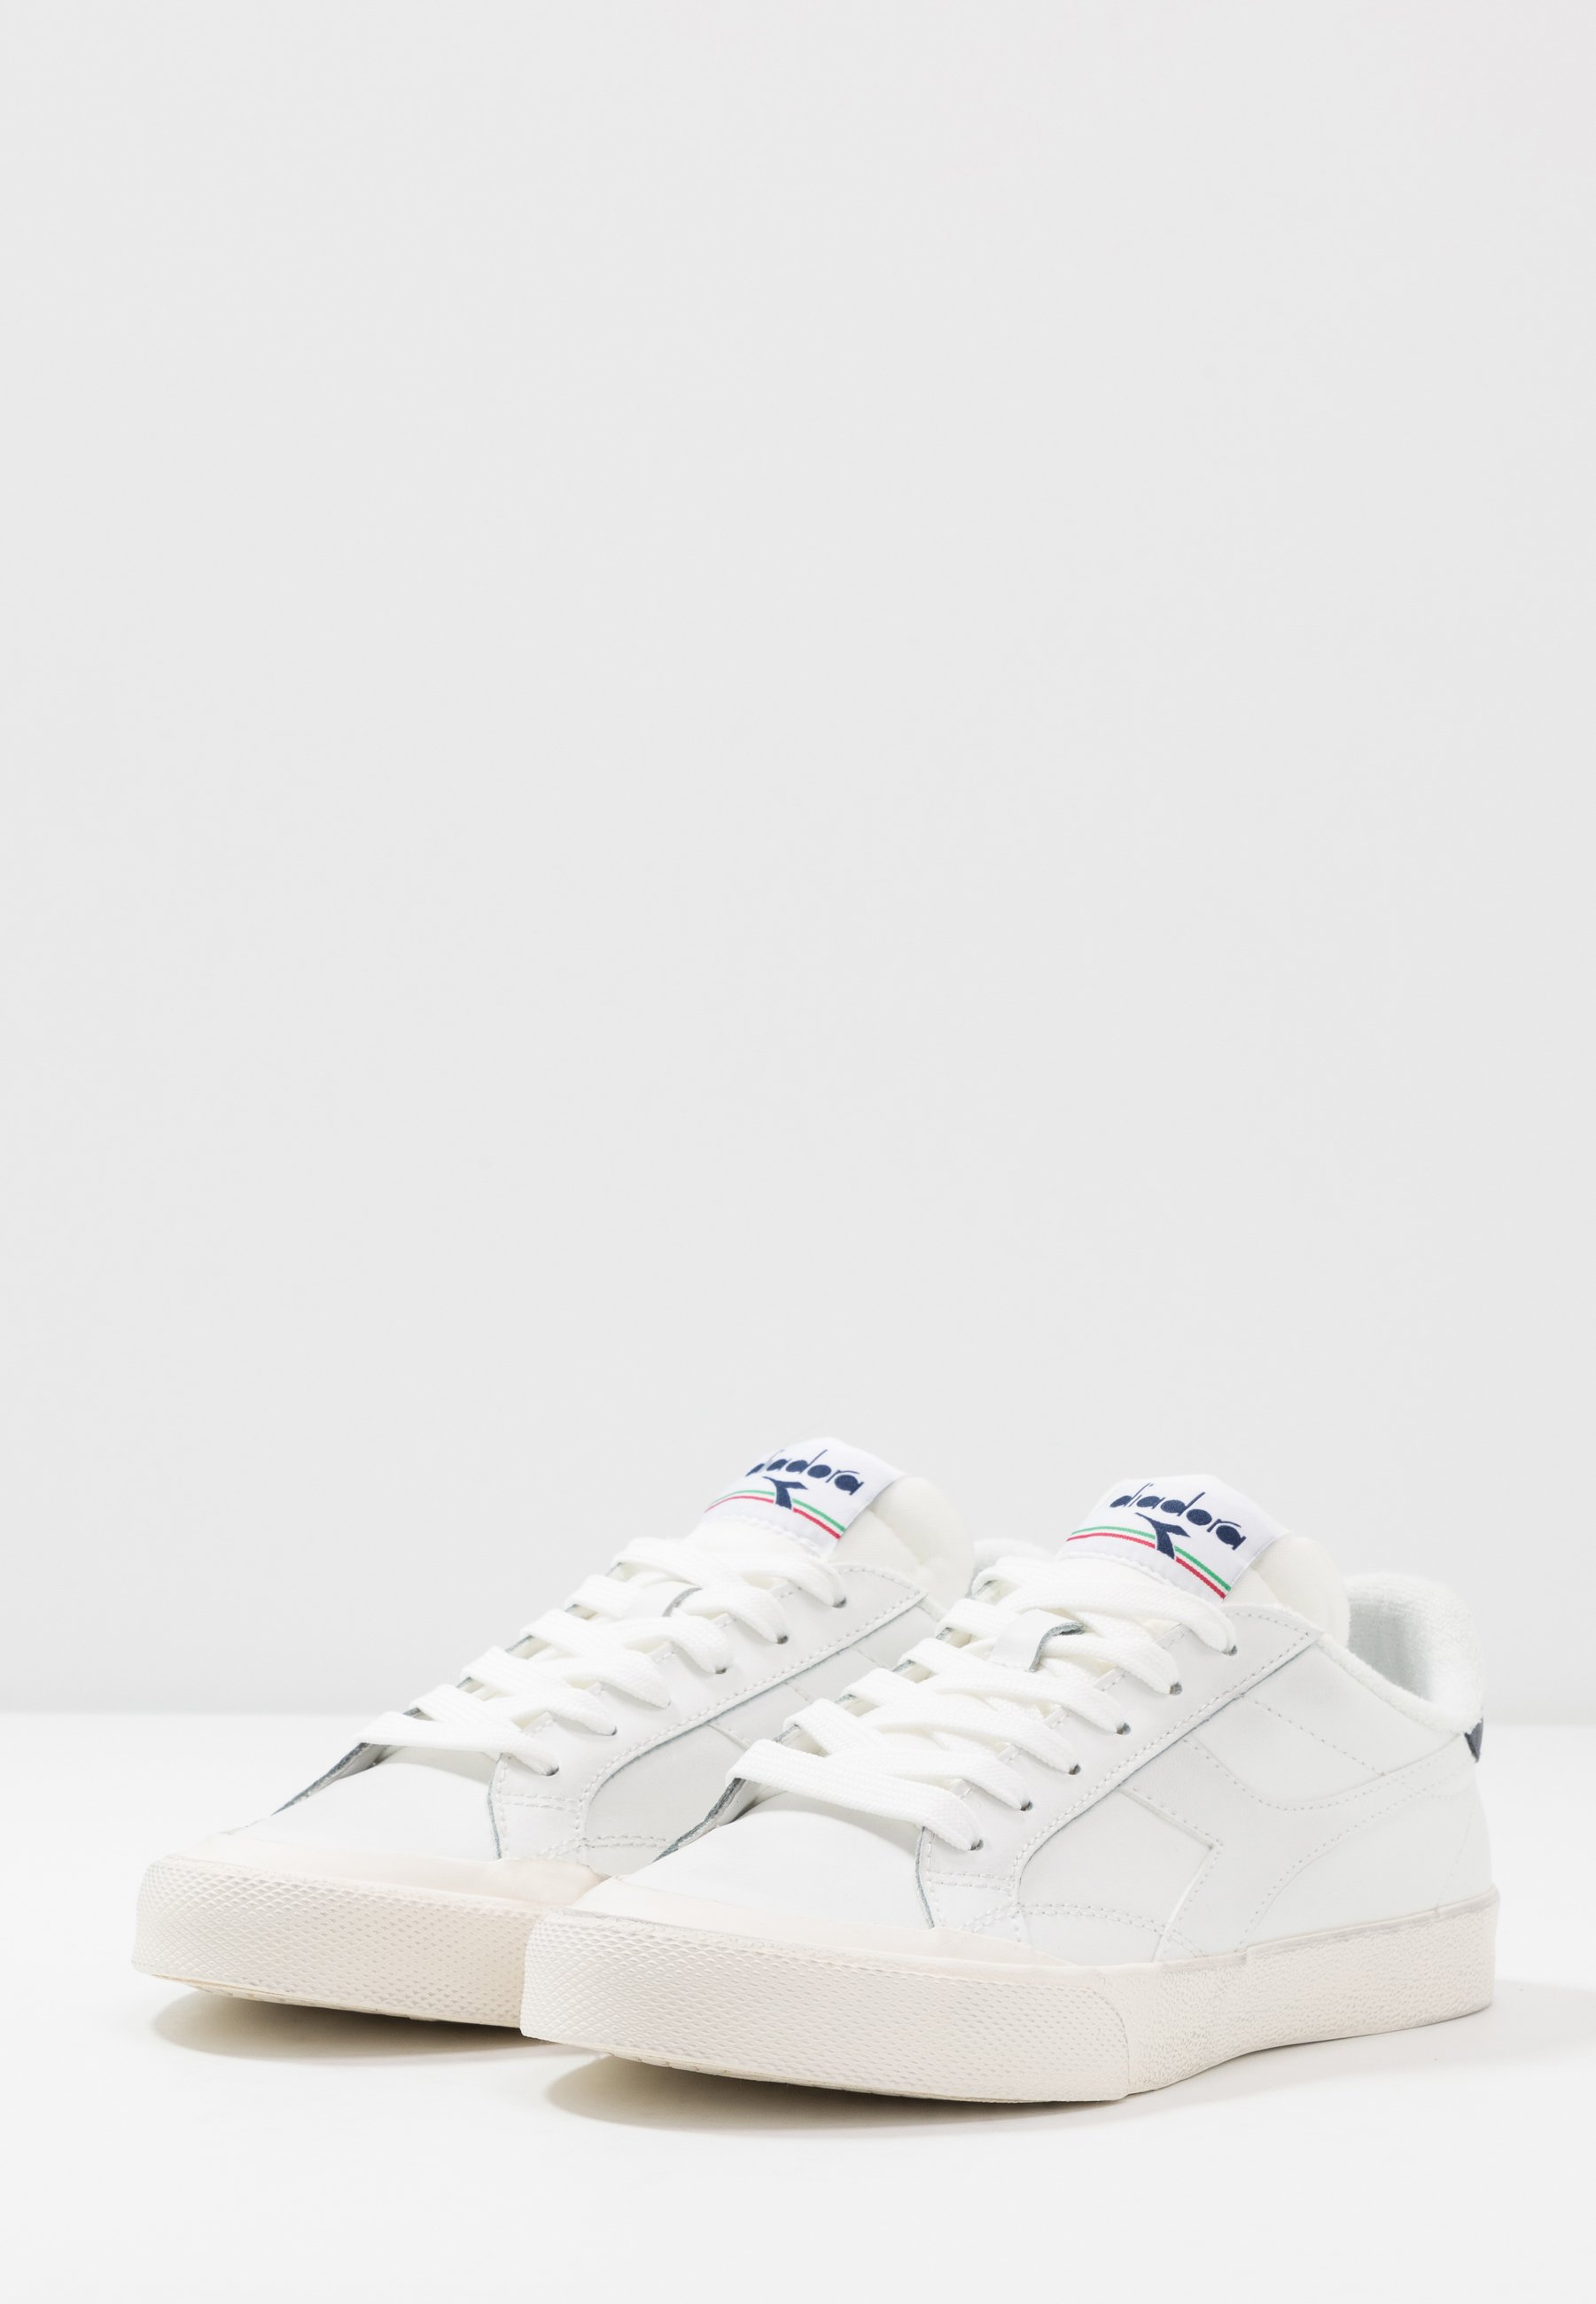 Diadora MELODY DIRTY - Baskets basses - white/corsair - Sneakers femme Original